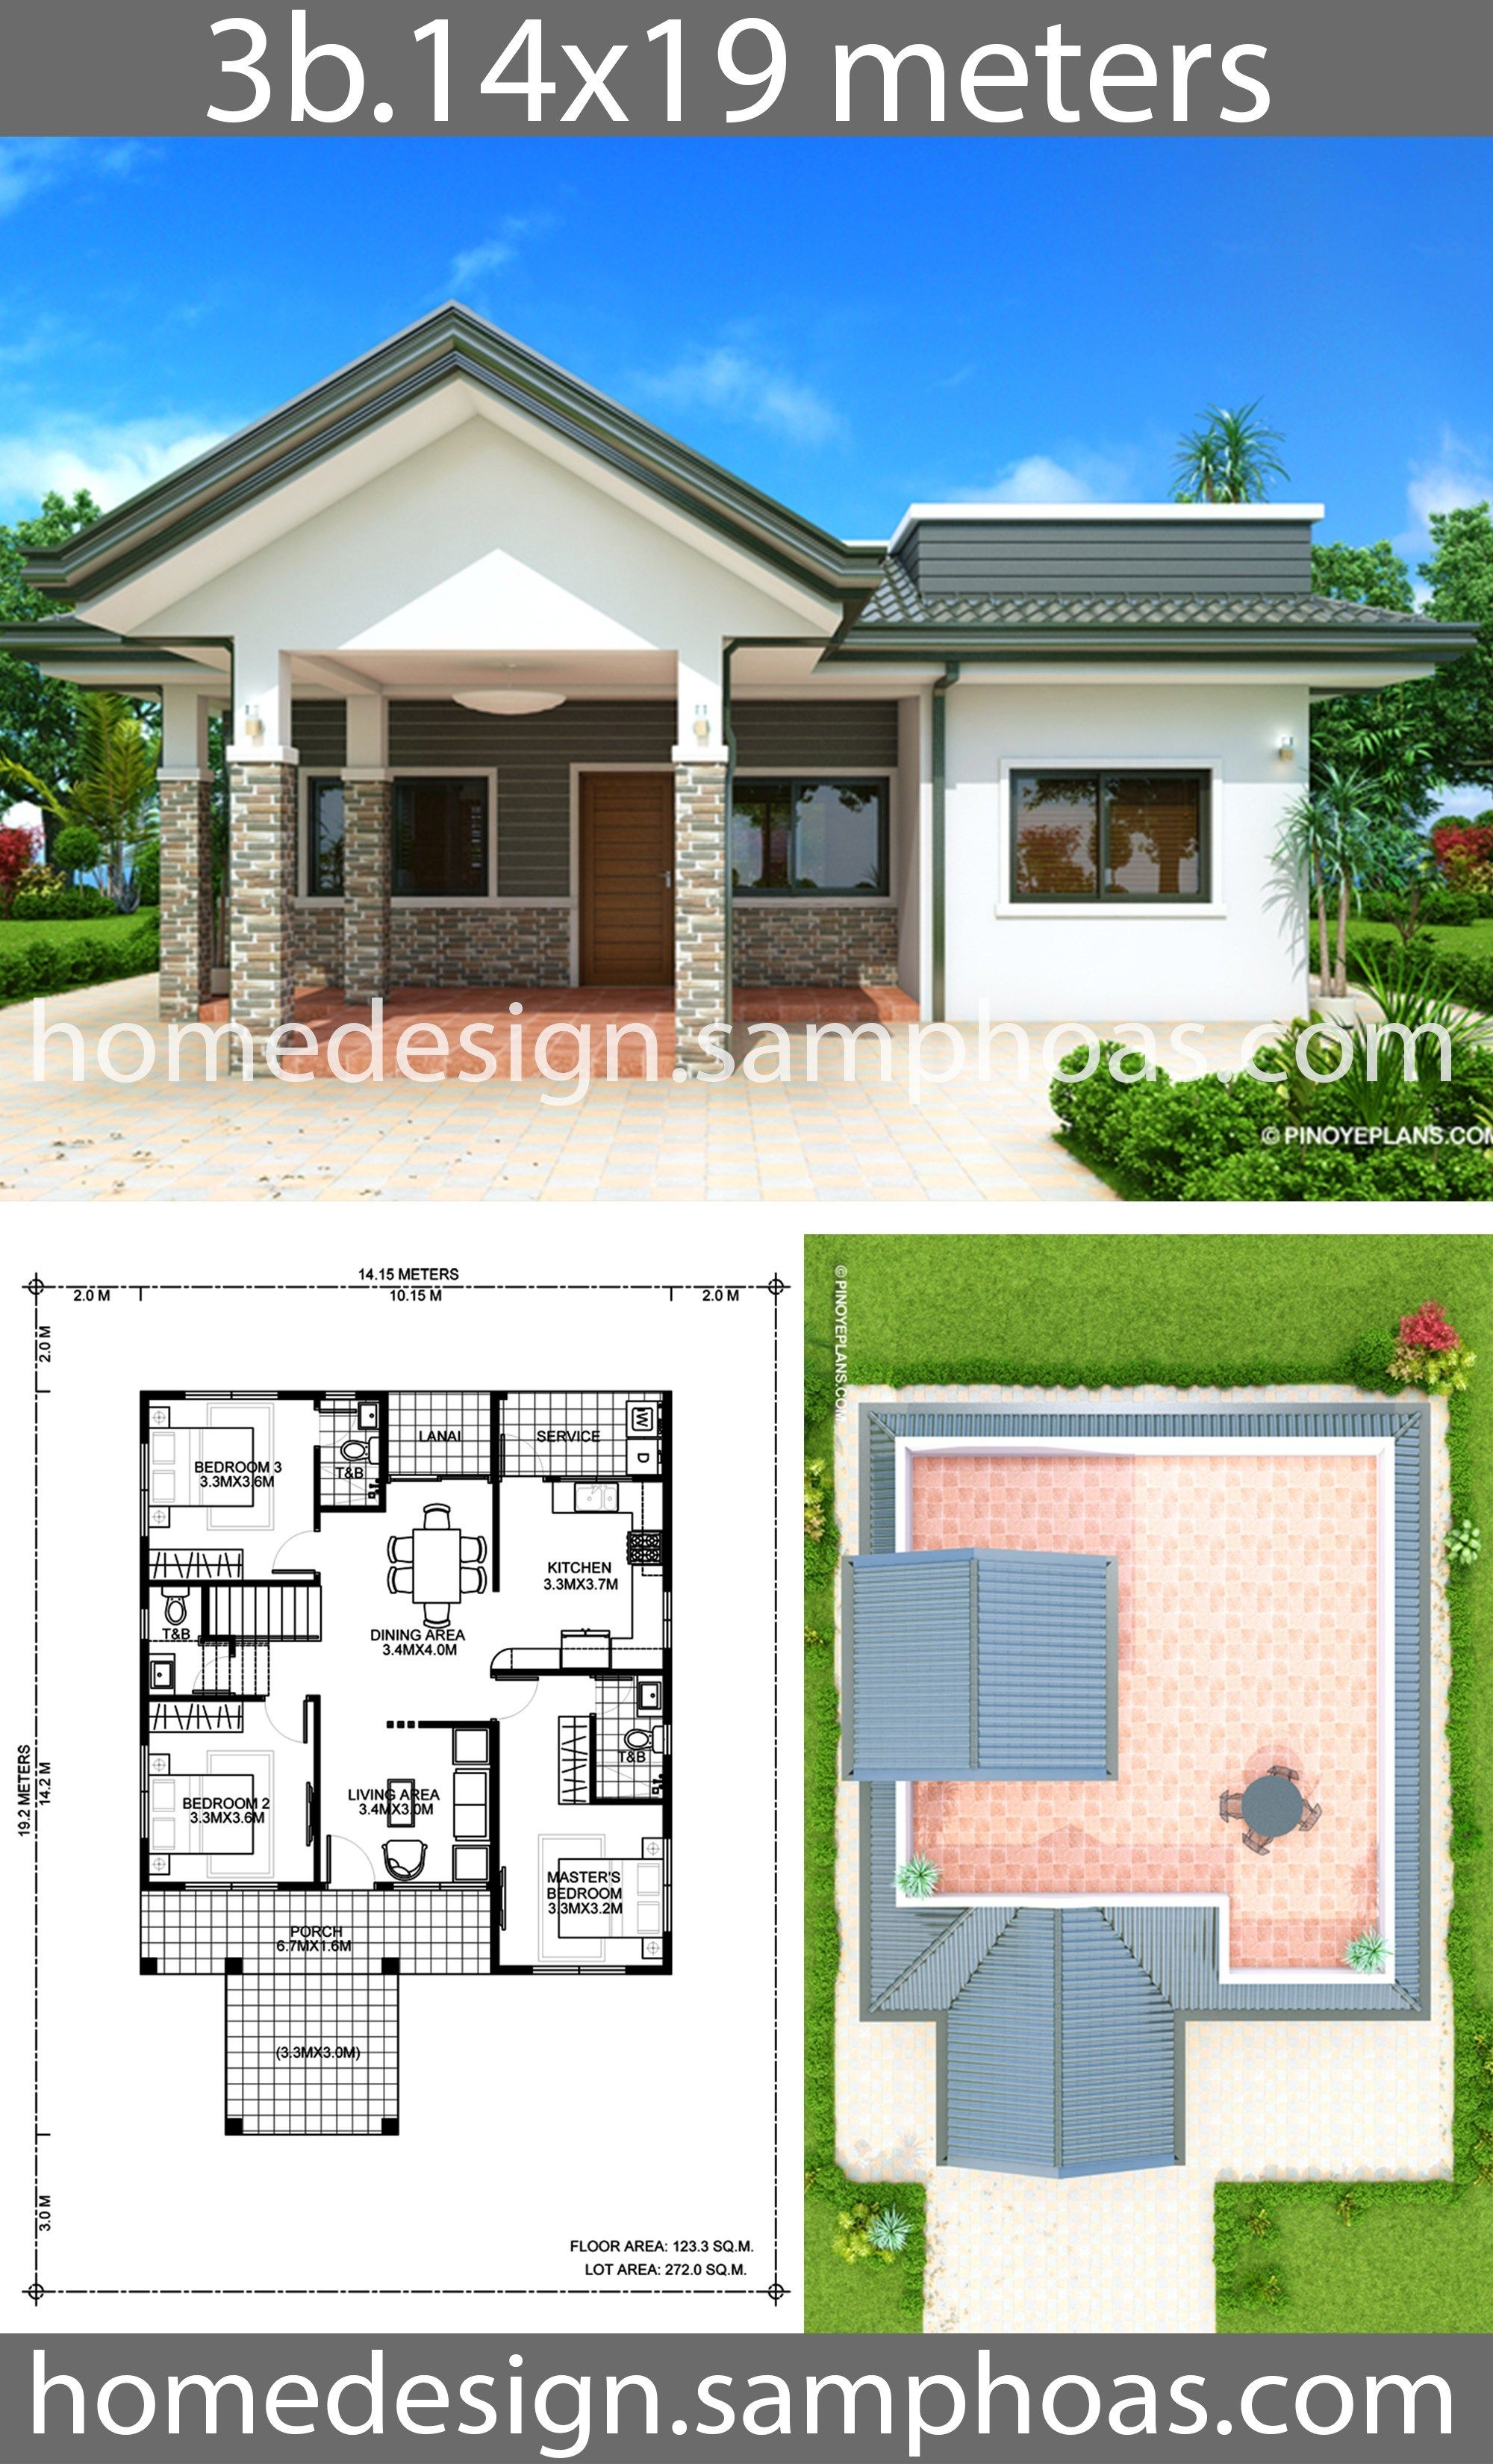 House Design Plans 14x19m With 3 Bedroom Style Modern Terrace Slaphouse Description Ground Level 3 Bedro Home Design Plans Beautiful House Plans House Design